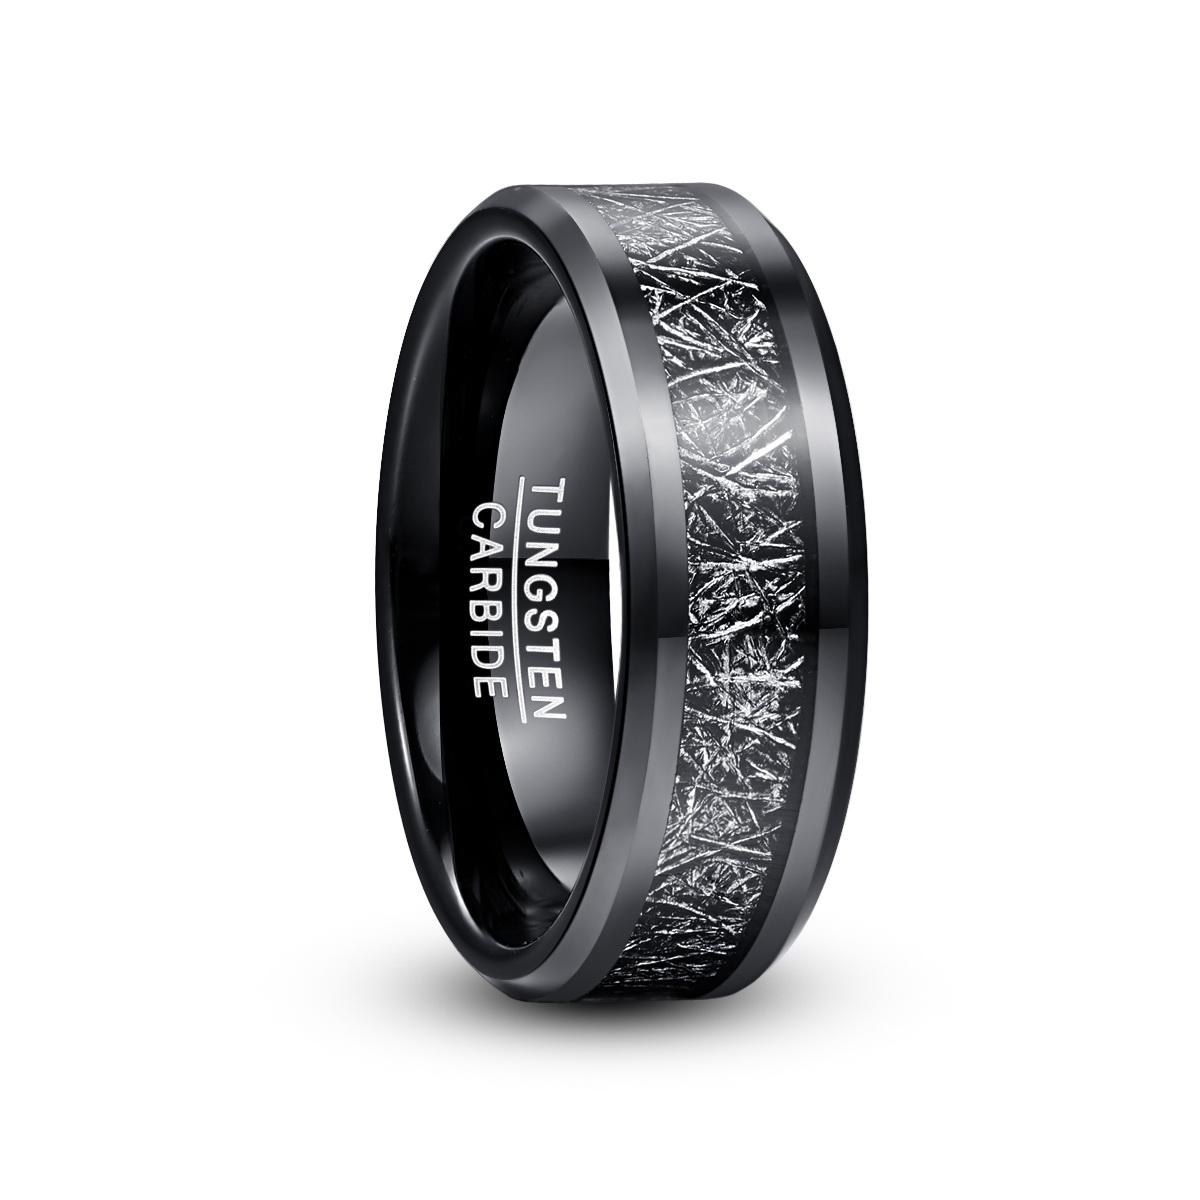 2019 8mm Width Men's Tungsten Carbide Ring Electroplated Black Inlaid Black Imitation Vermiculite